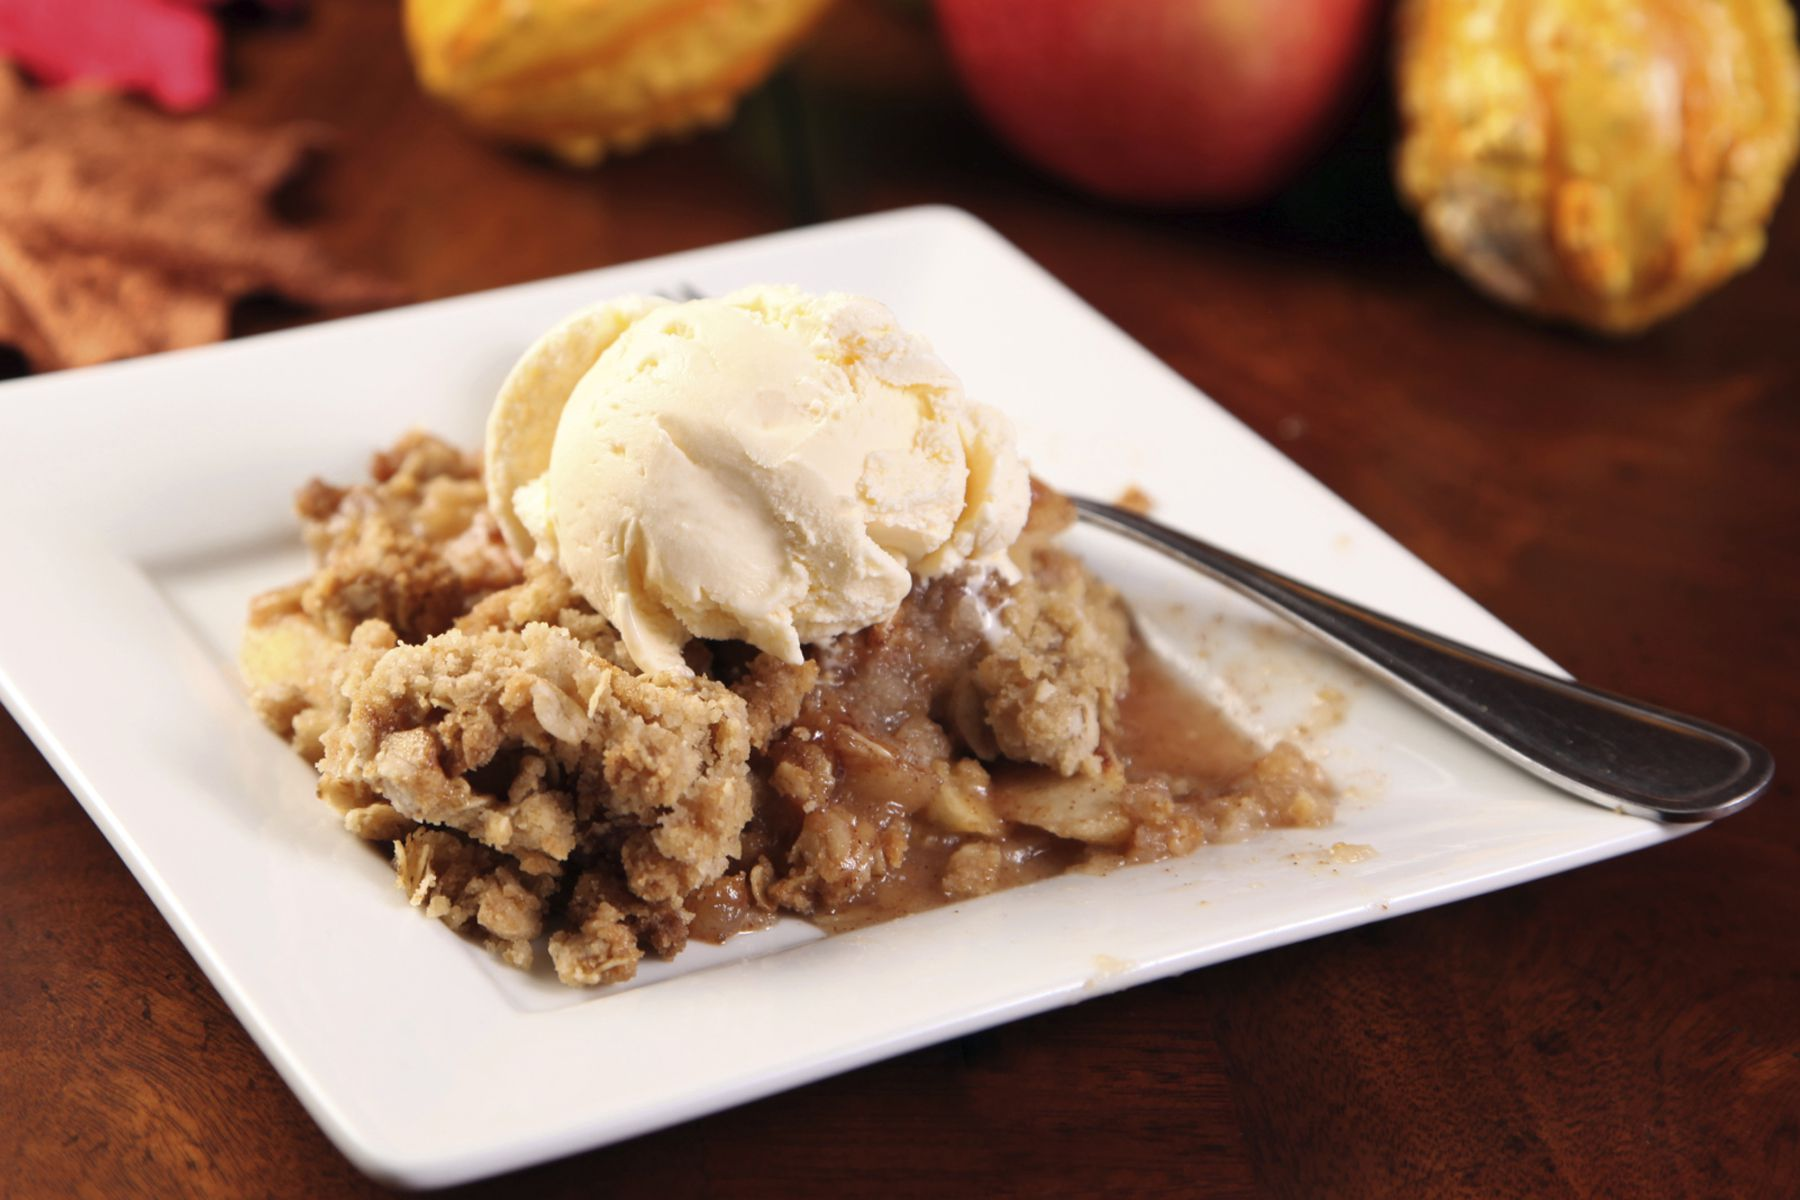 Make This Easy Brown Sugar Apple Crisp With Crumbly Oat Topping